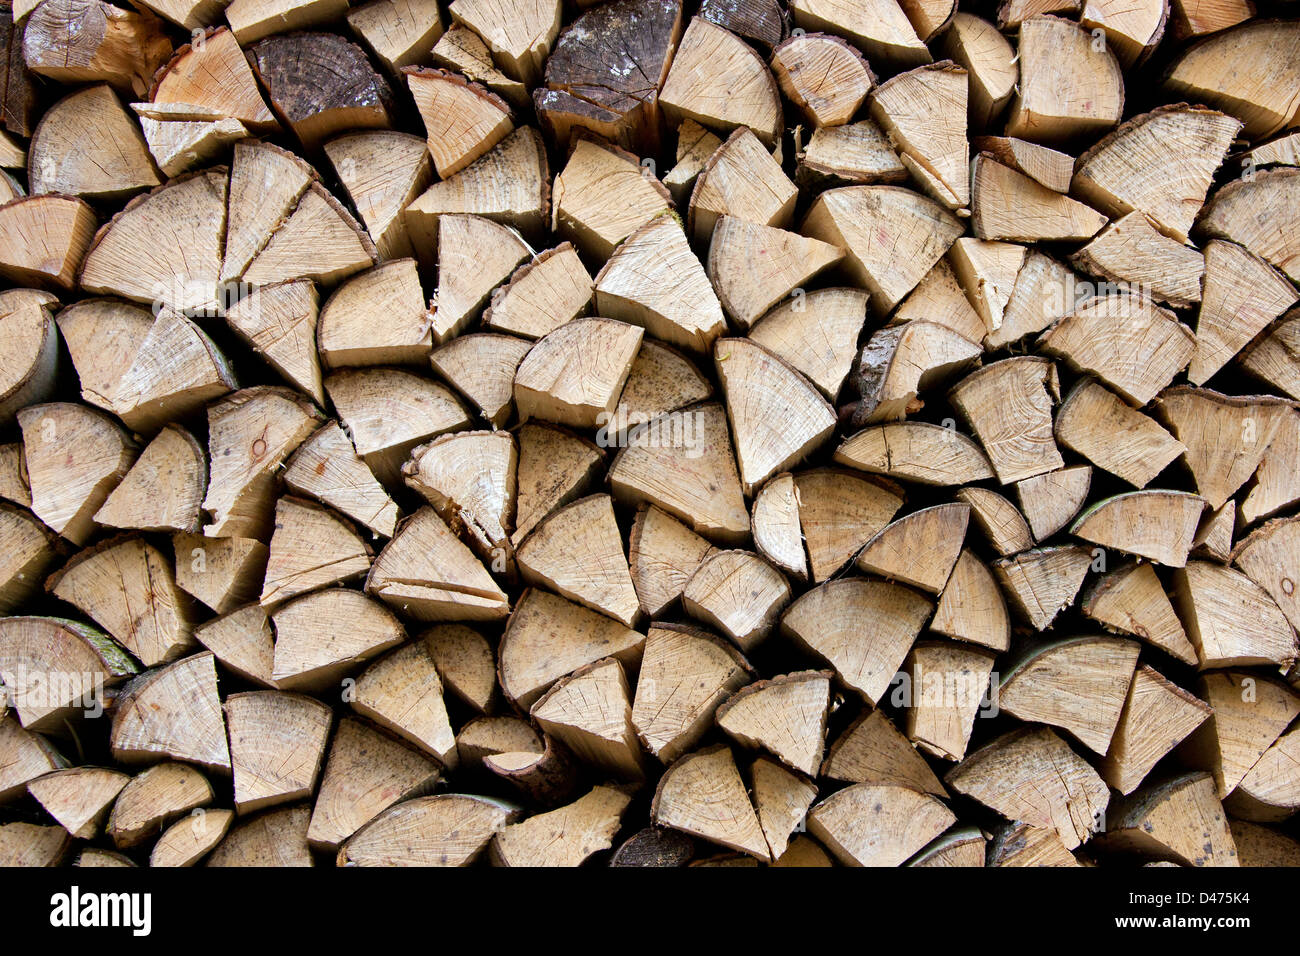 Pile of stacked firewood, chumps of chopped beech wood to use as fuel for wood-burning stove - Stock Image